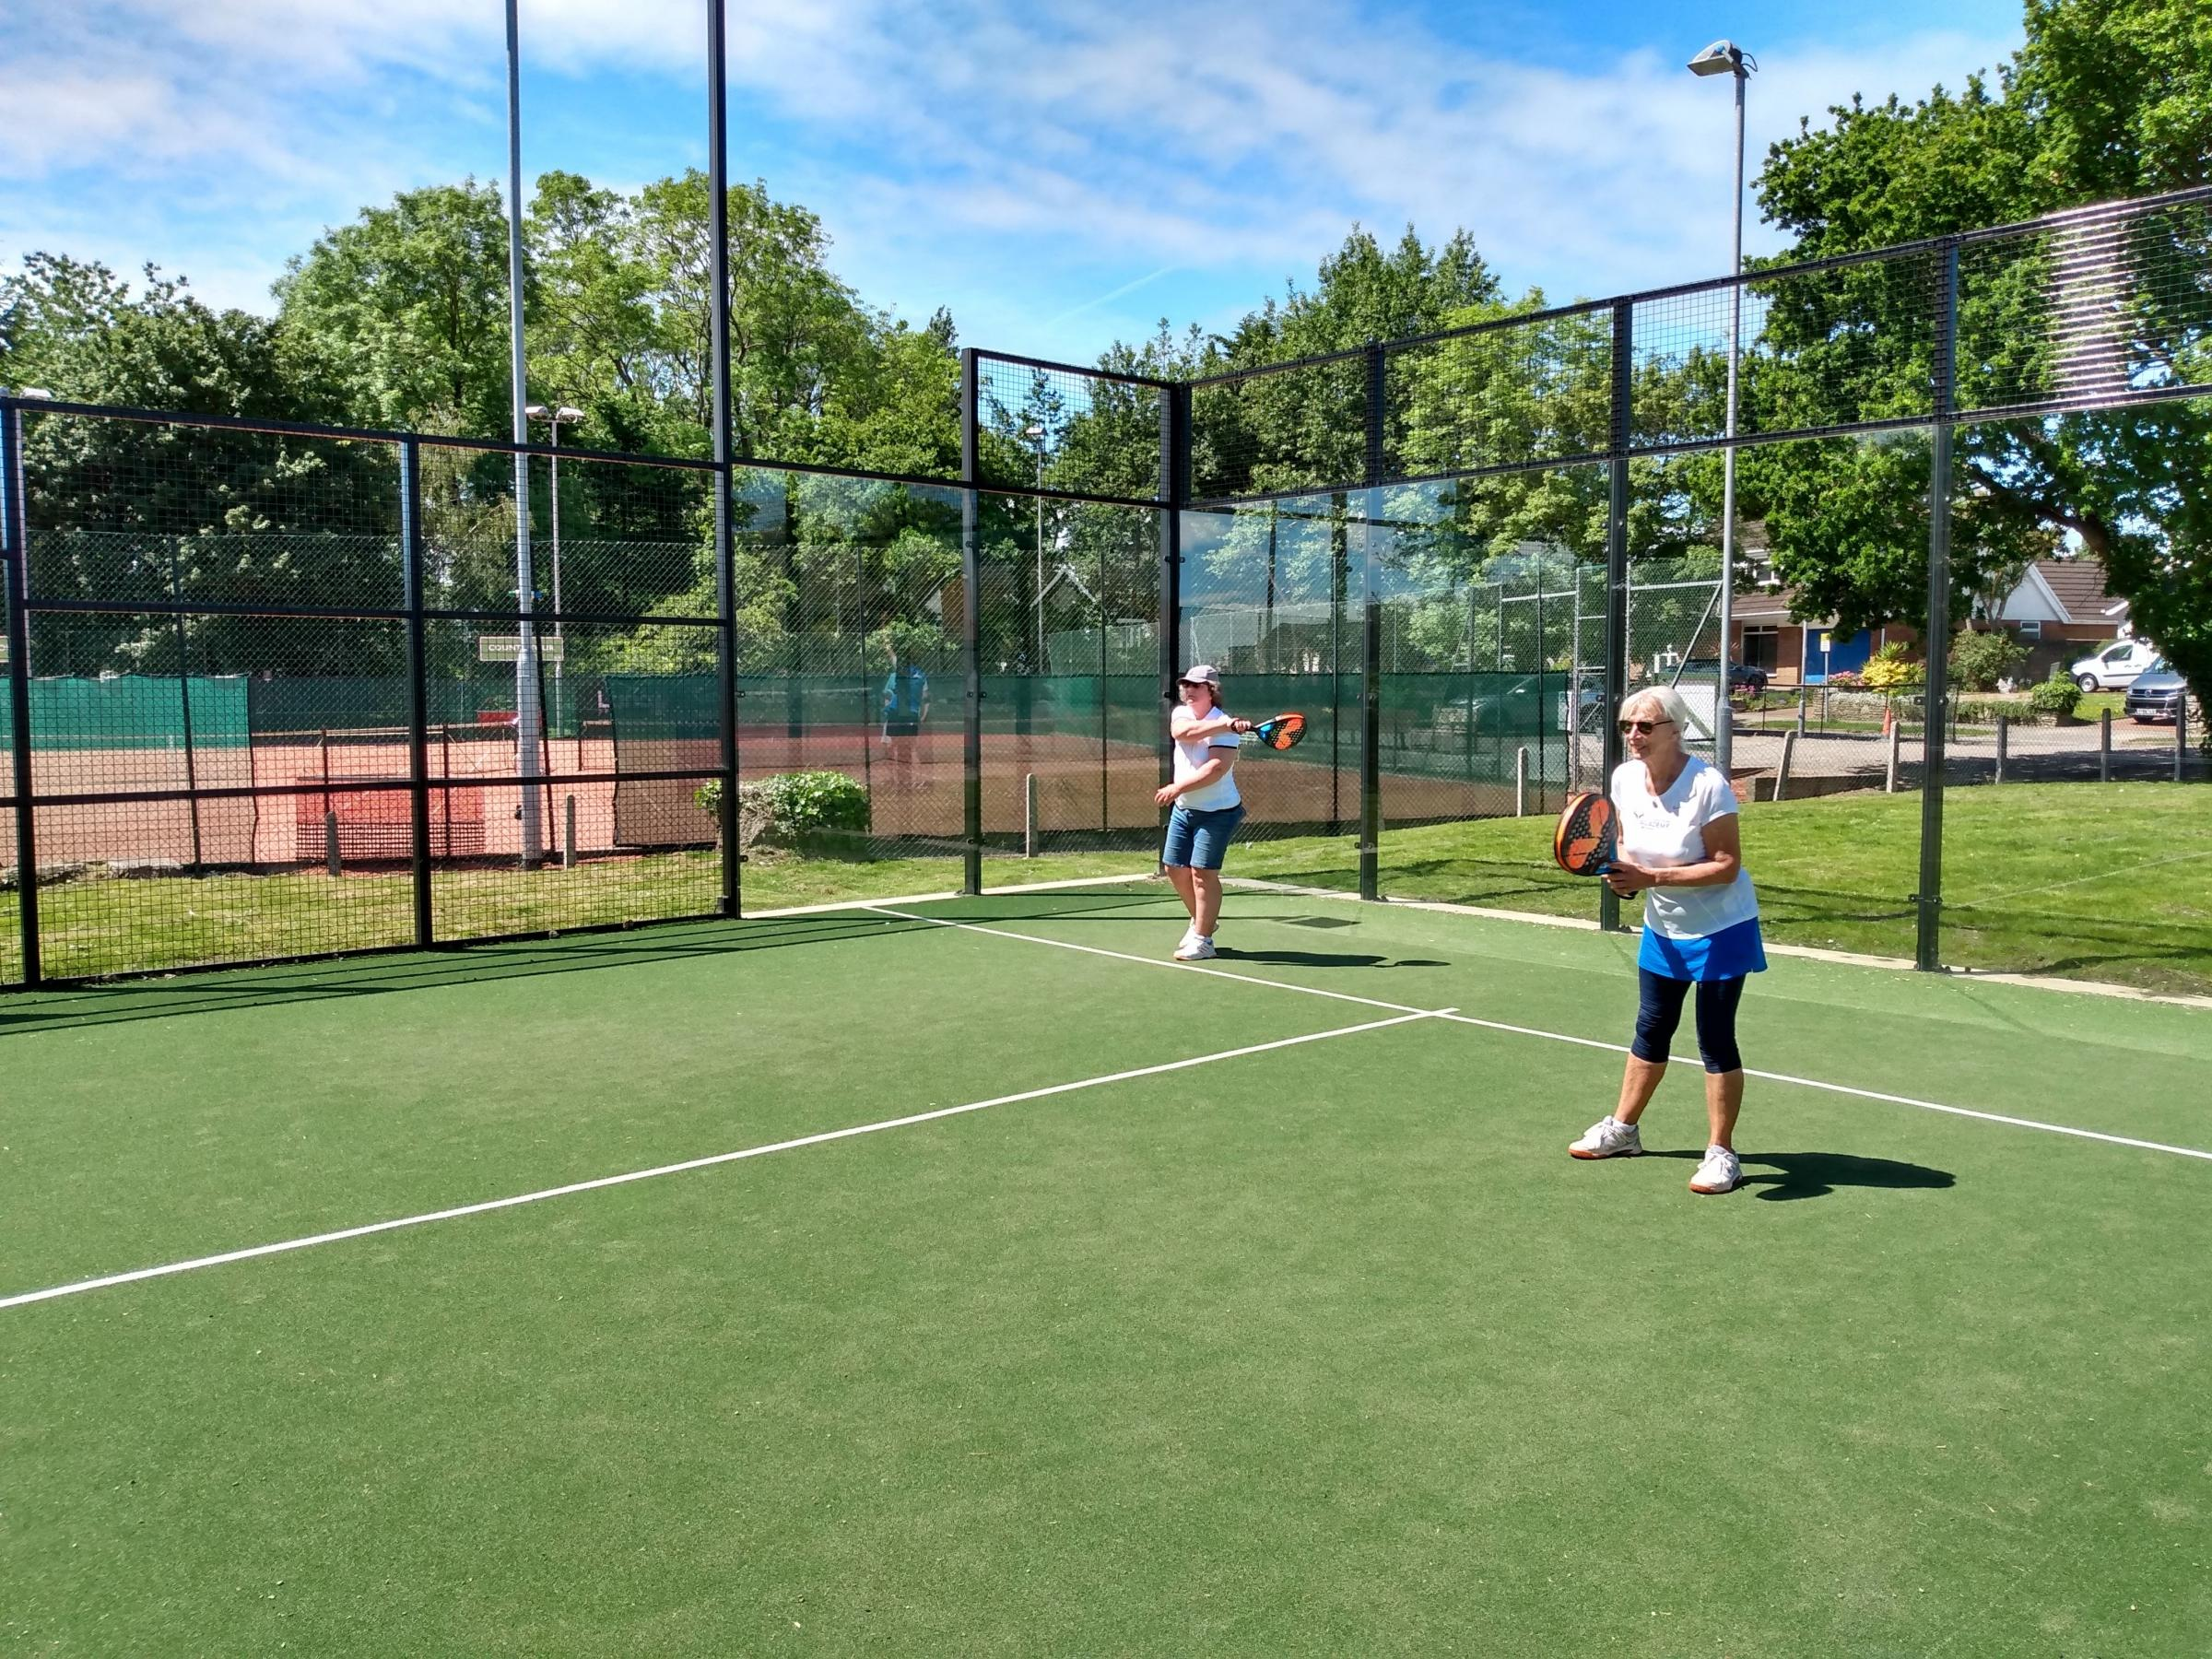 Alison Tranter (left) and Elaine Stevenson playing Padel Tennis at Windsor Lawn Tennis Club in Penarth.